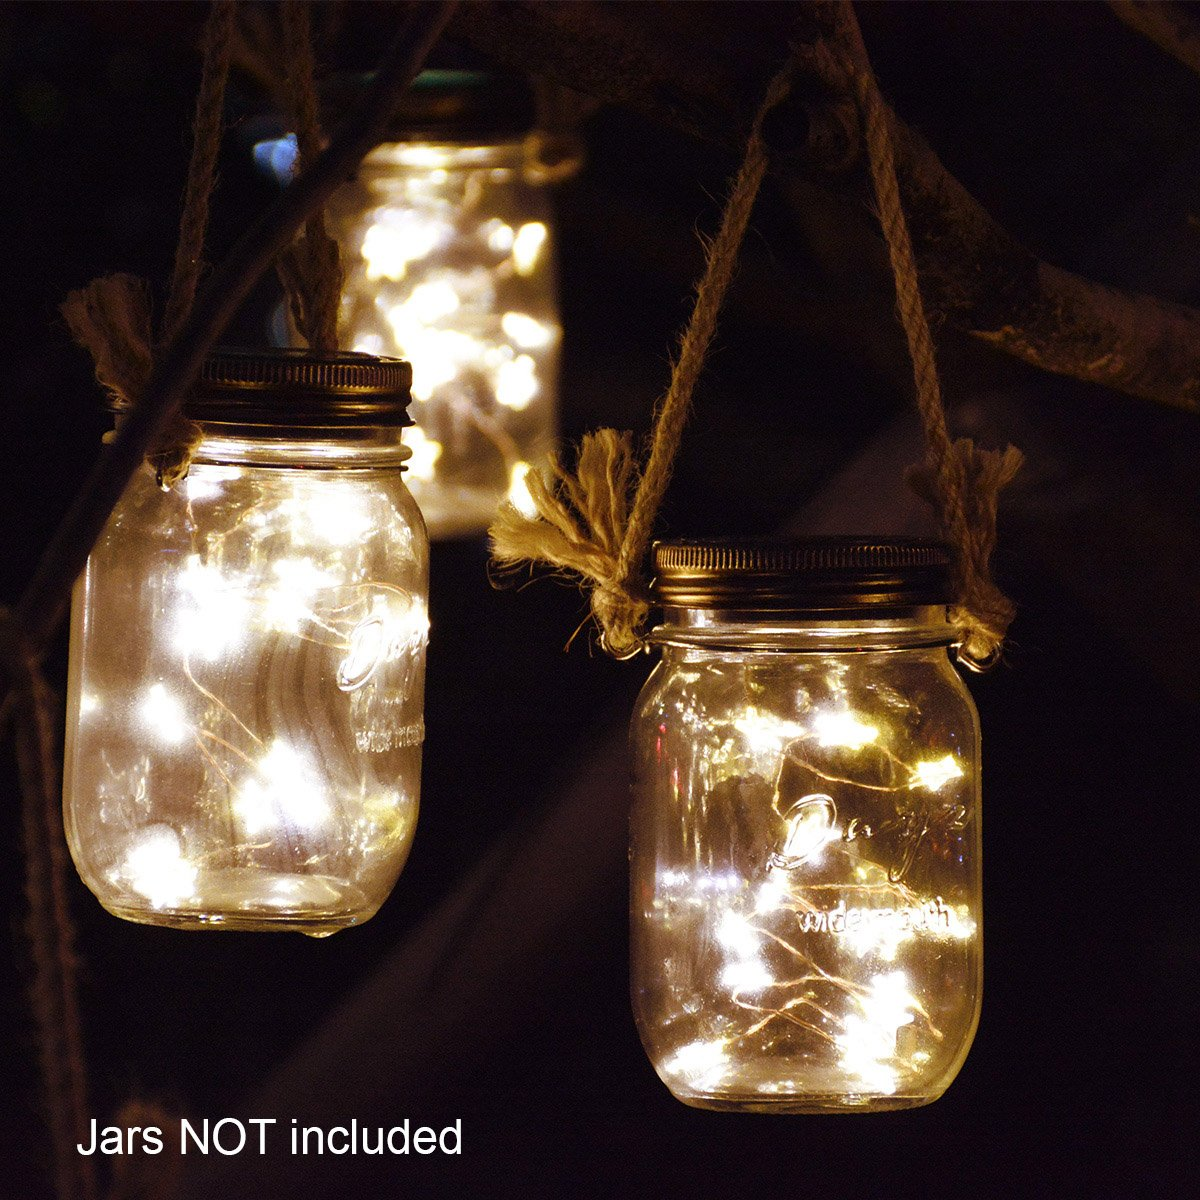 Homeleo 5 Pack Handmade Vintage Solar Mason Jar Star Lights Burlap Hangers Solar Powered Warm White Mason Jar Firefly Lid Light for Xmas Outdoor Garden Summer Backyard Decoration Jars Not Included